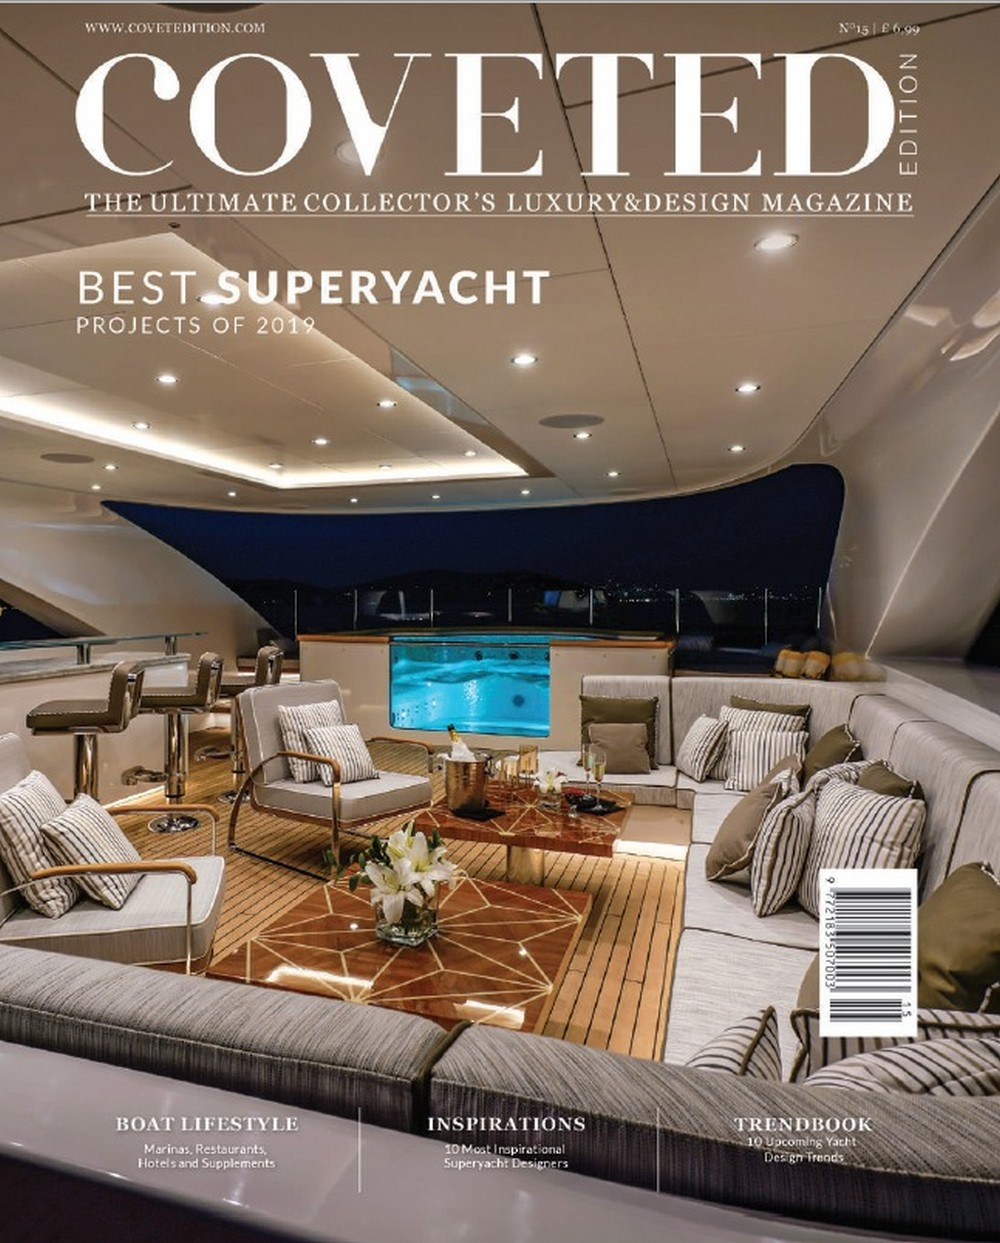 Inside The Luxury Design And Yacht Lifestyle With CovetED's 15th Issue luxury design Inside The Luxury Design And Yacht Lifestyle With CovetED's 15th Issue Inside The Luxury Design And Yacht Lifestyle With CovetEDs 15th Issue 9